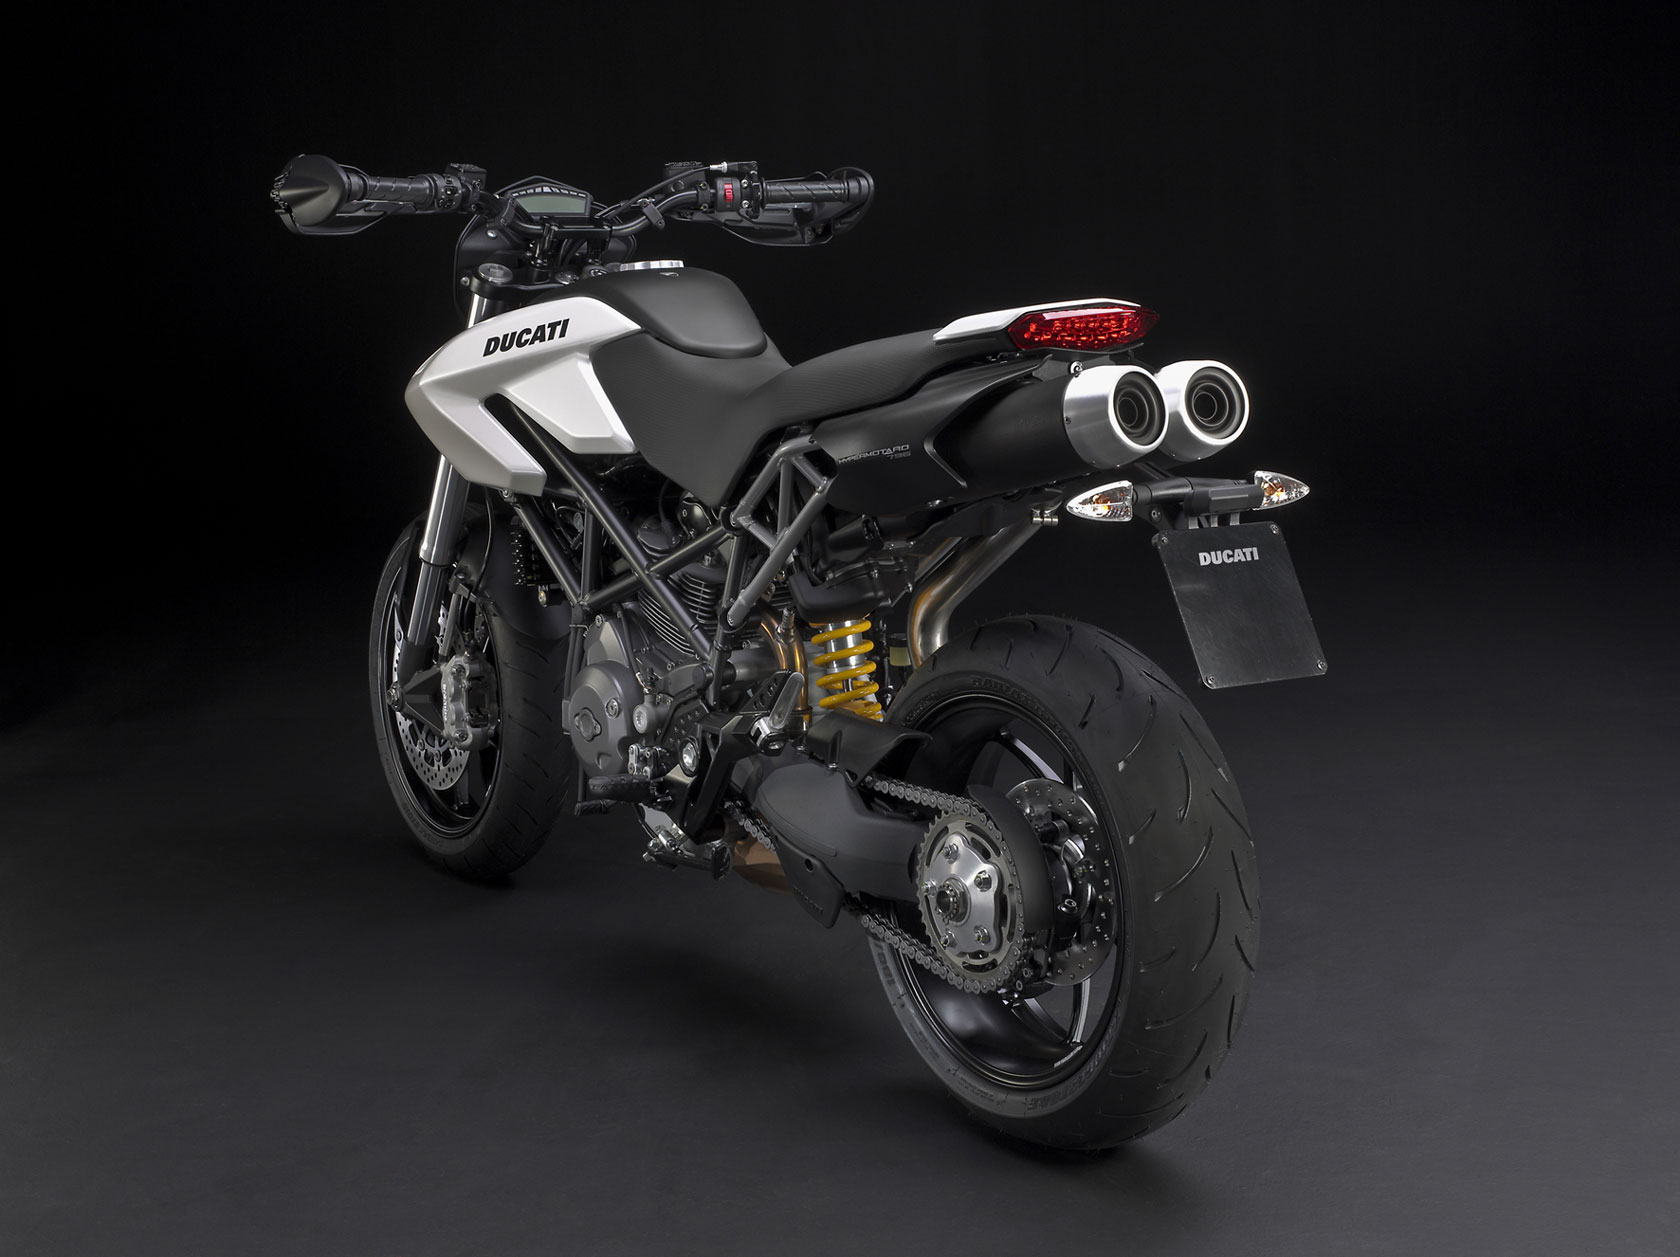 Ducati Hypermotard 796 2011 images #79582